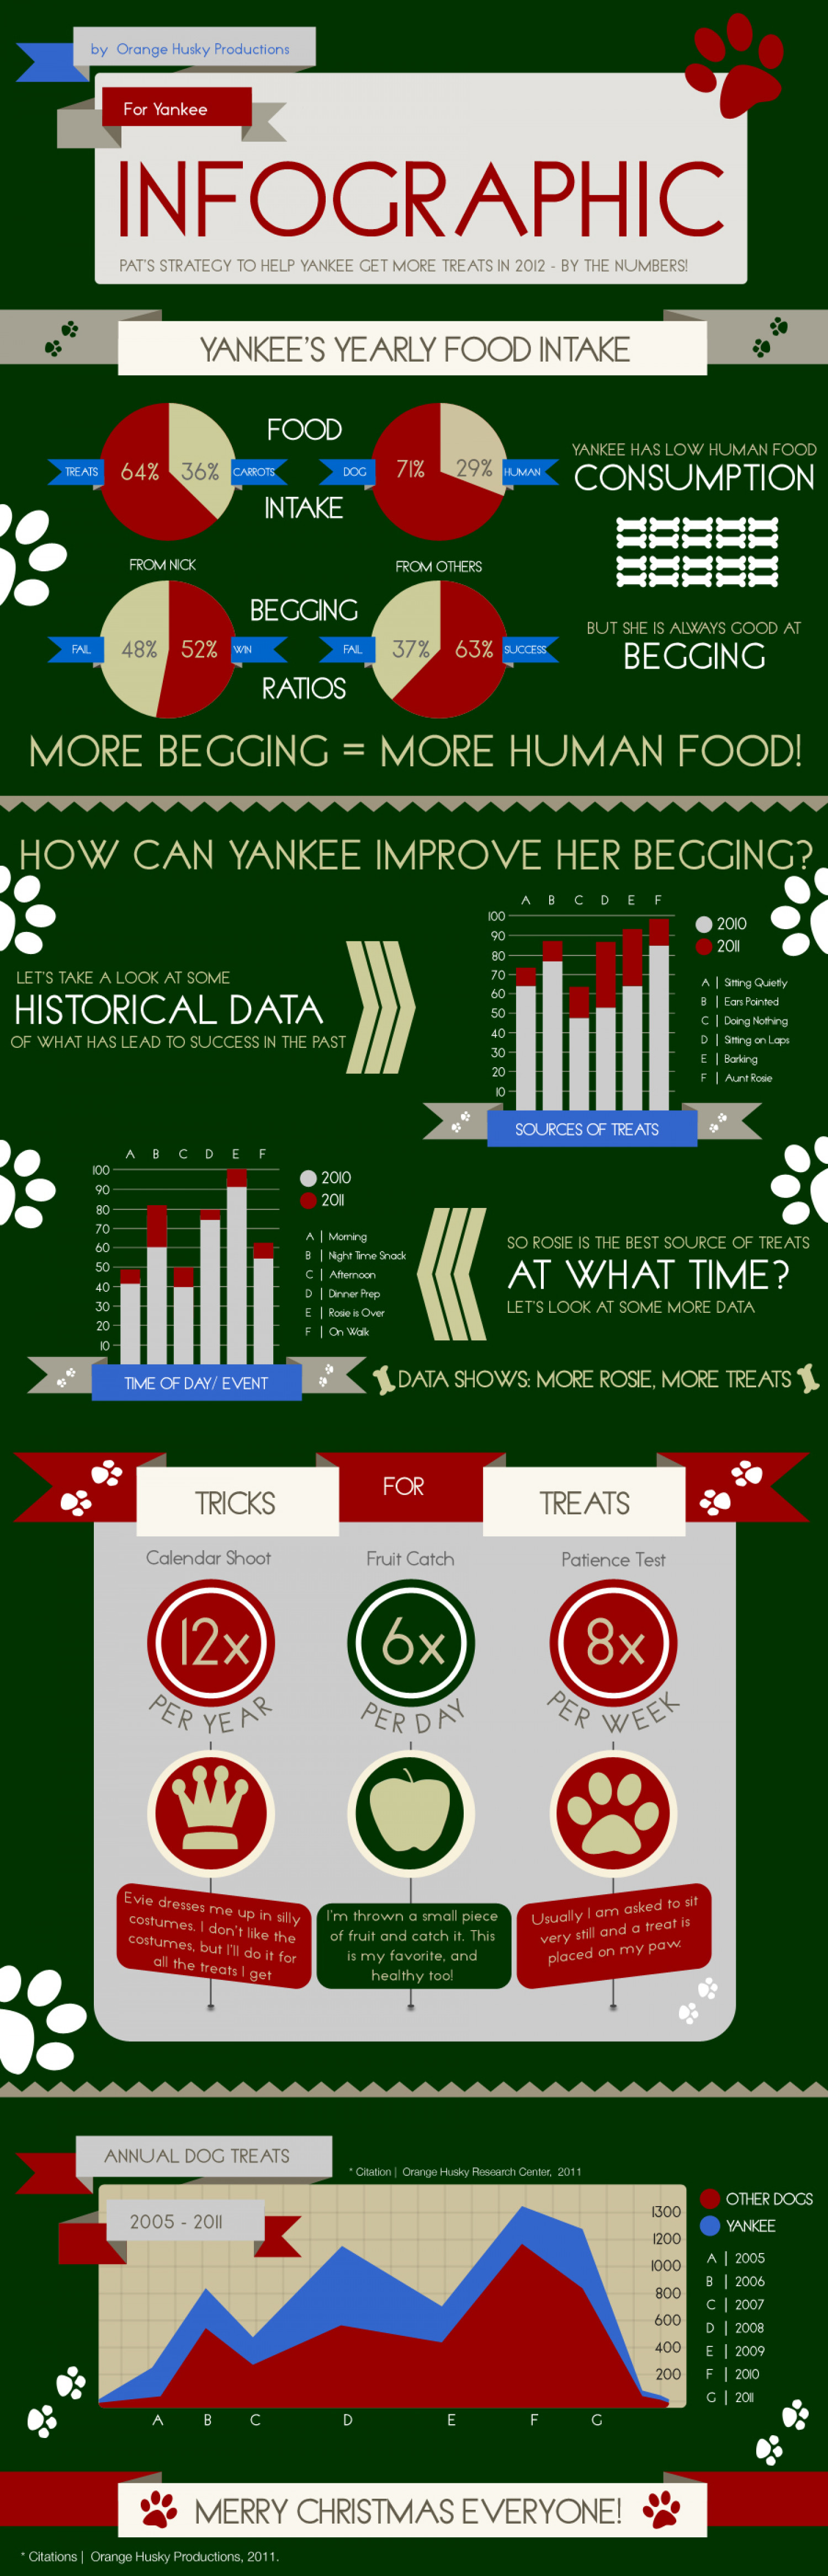 Helping My Dog Get More Treats in 2012 Infographic